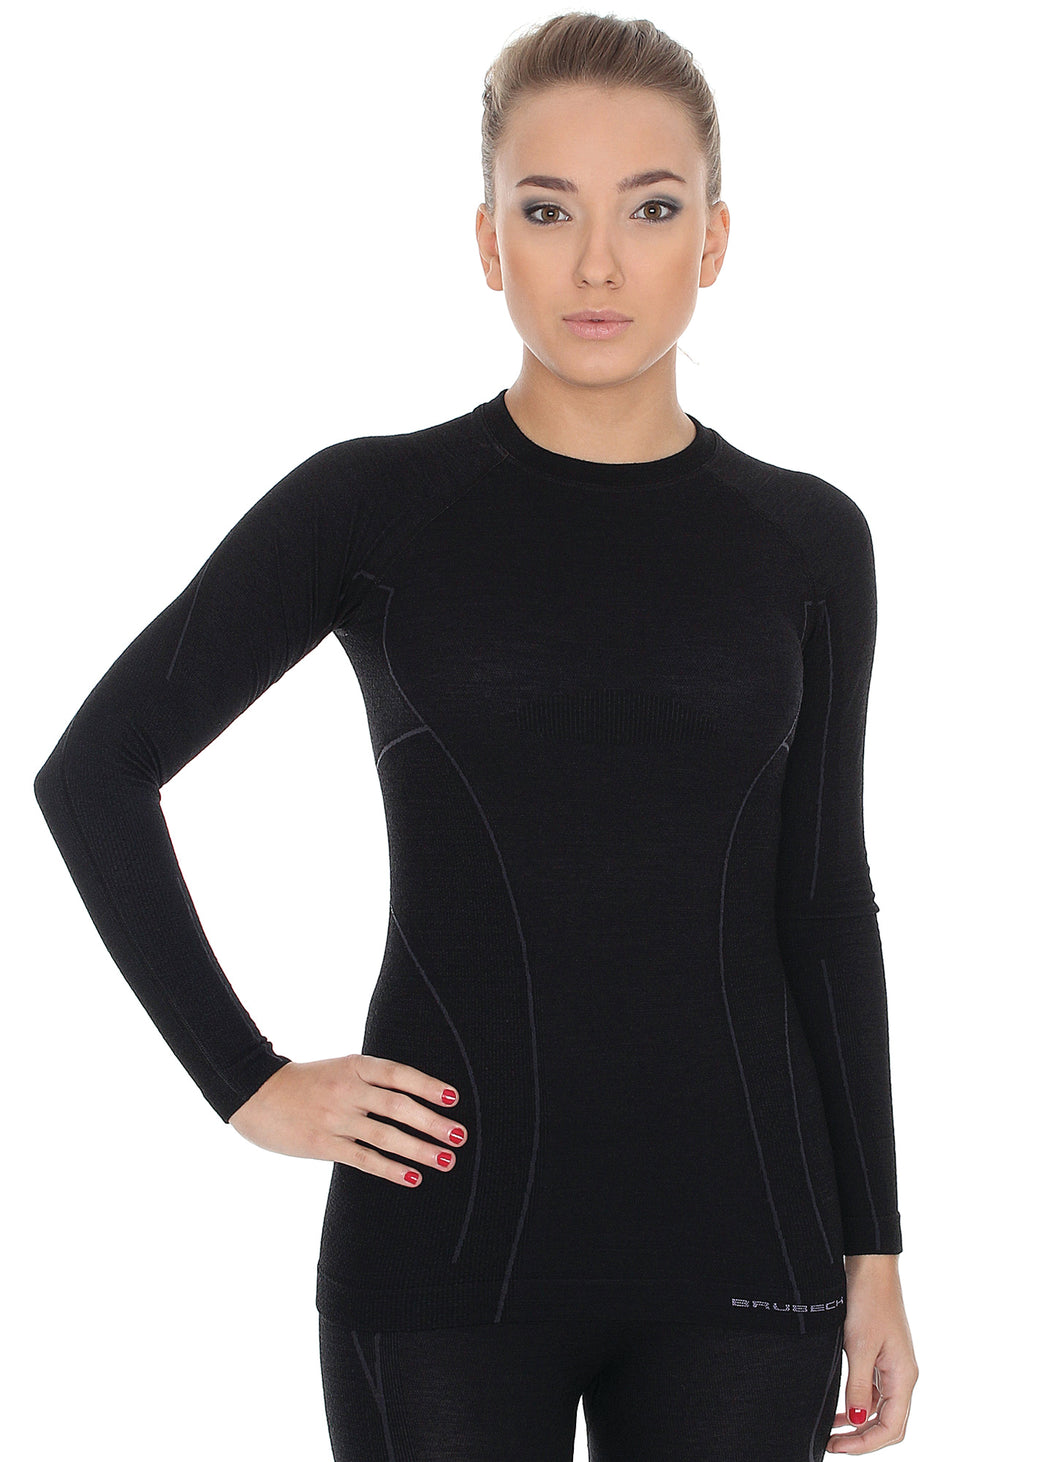 Women's Top ACTIVE WOOL Long Sleeve